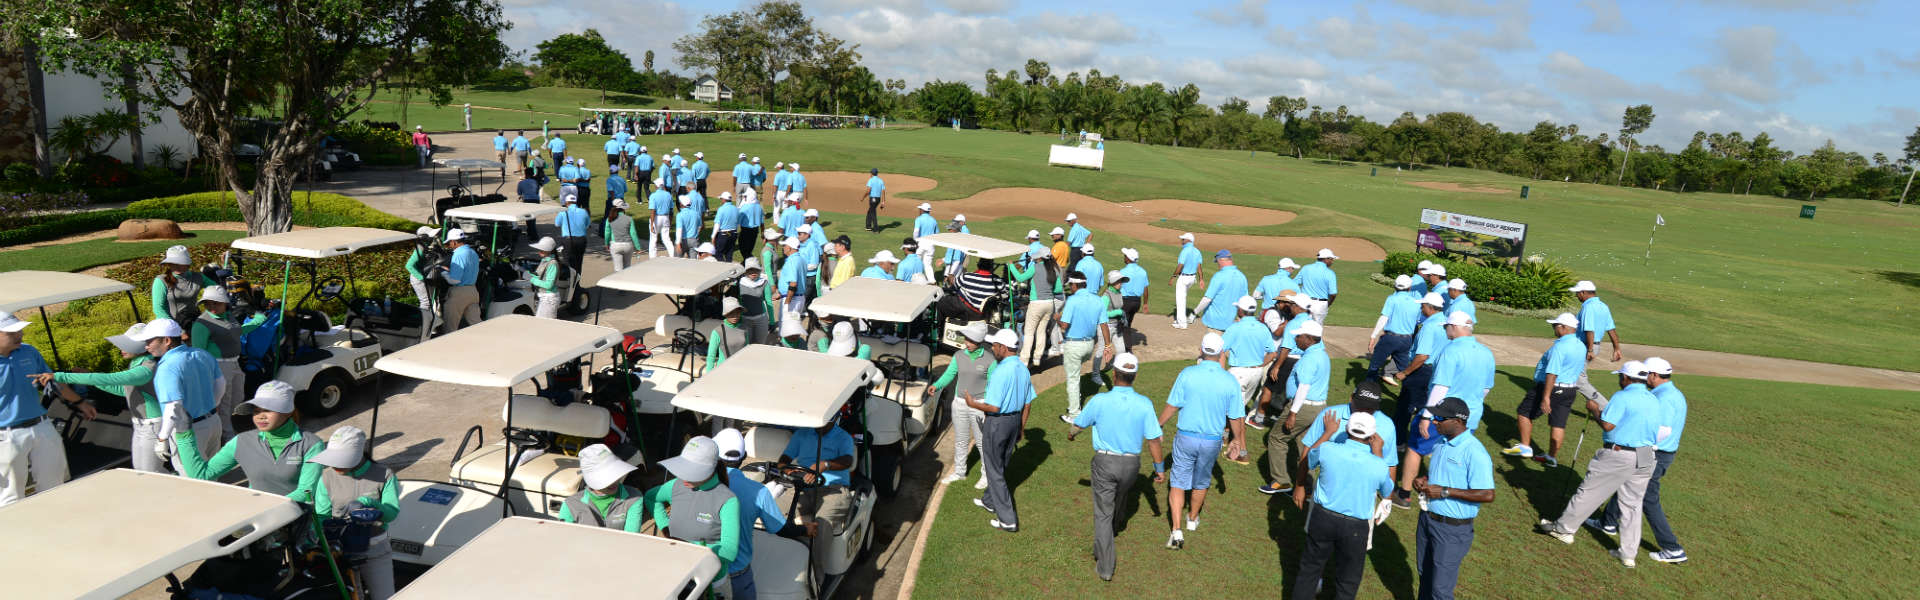 BTAGC-8-Golfers-Ready-to-Tee-off